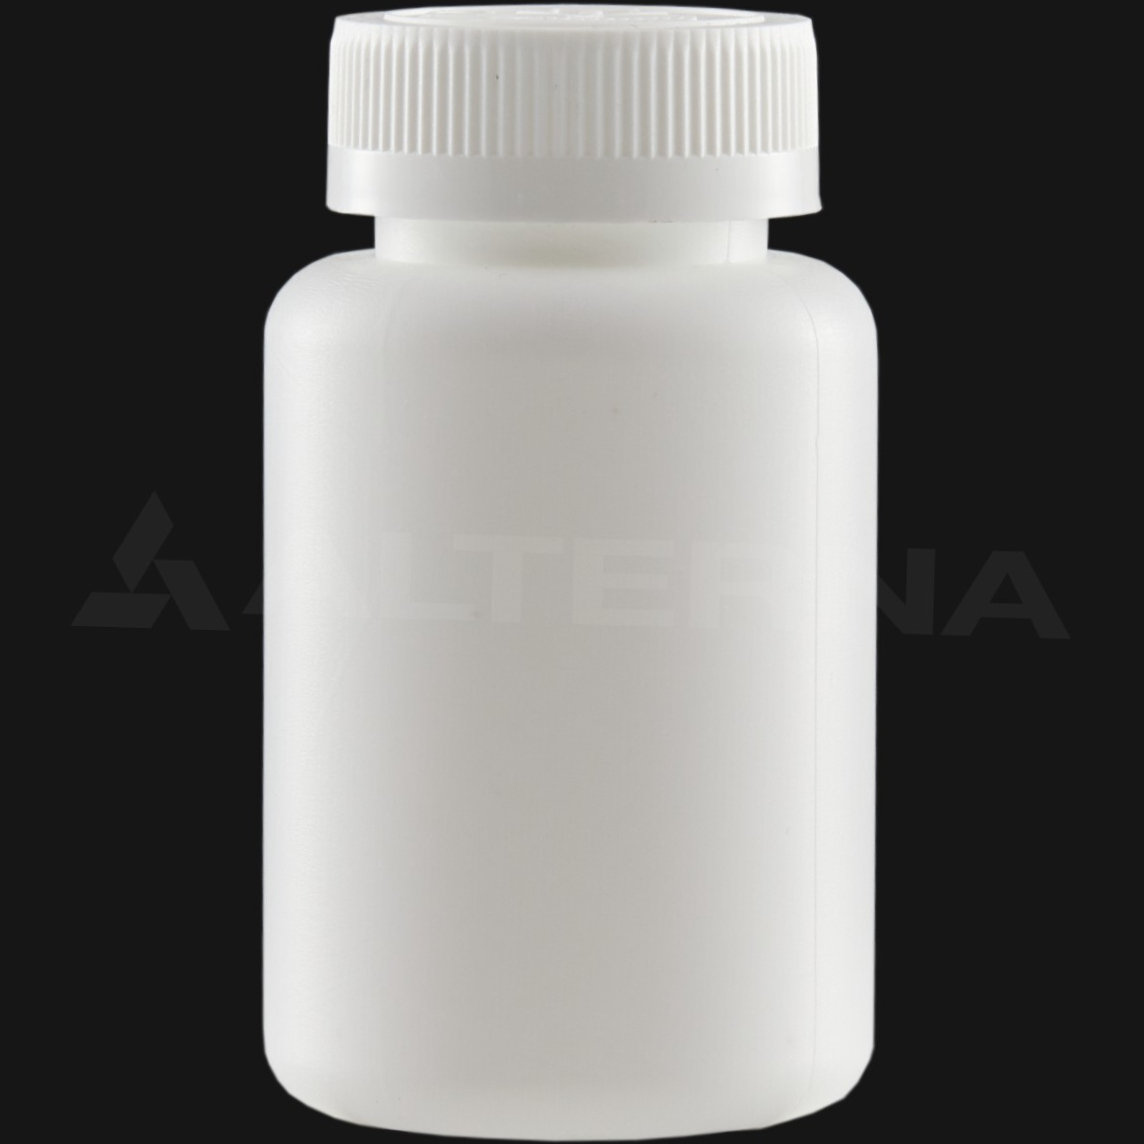 120 ml HDPE Pill Bottle with 38 mm Child Resistant Cap